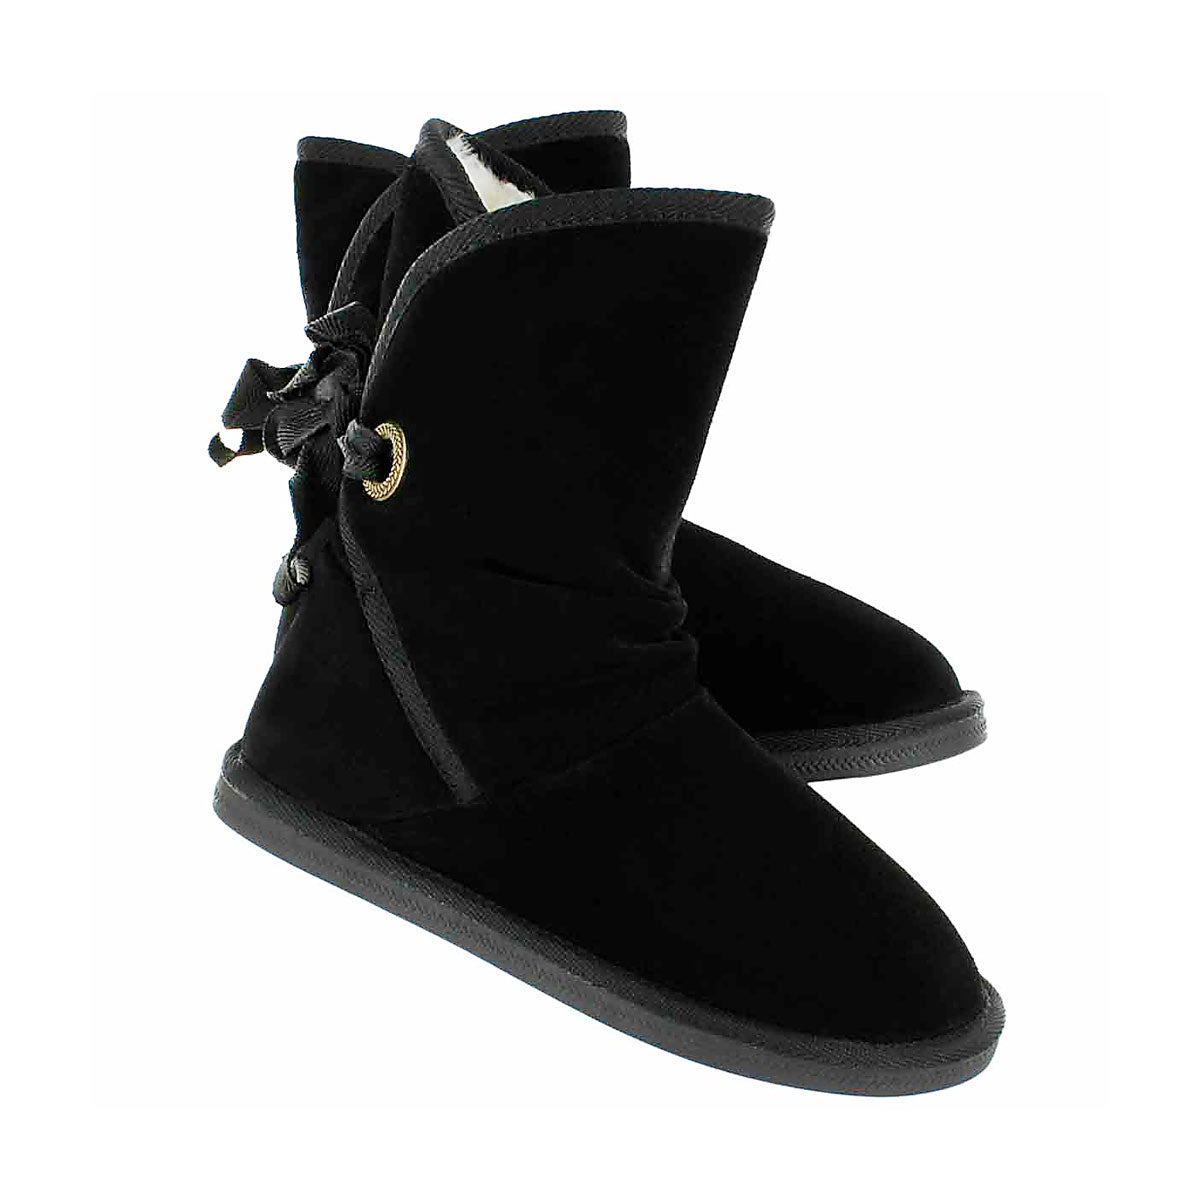 Botte su�de noir RIBBON JR, fil